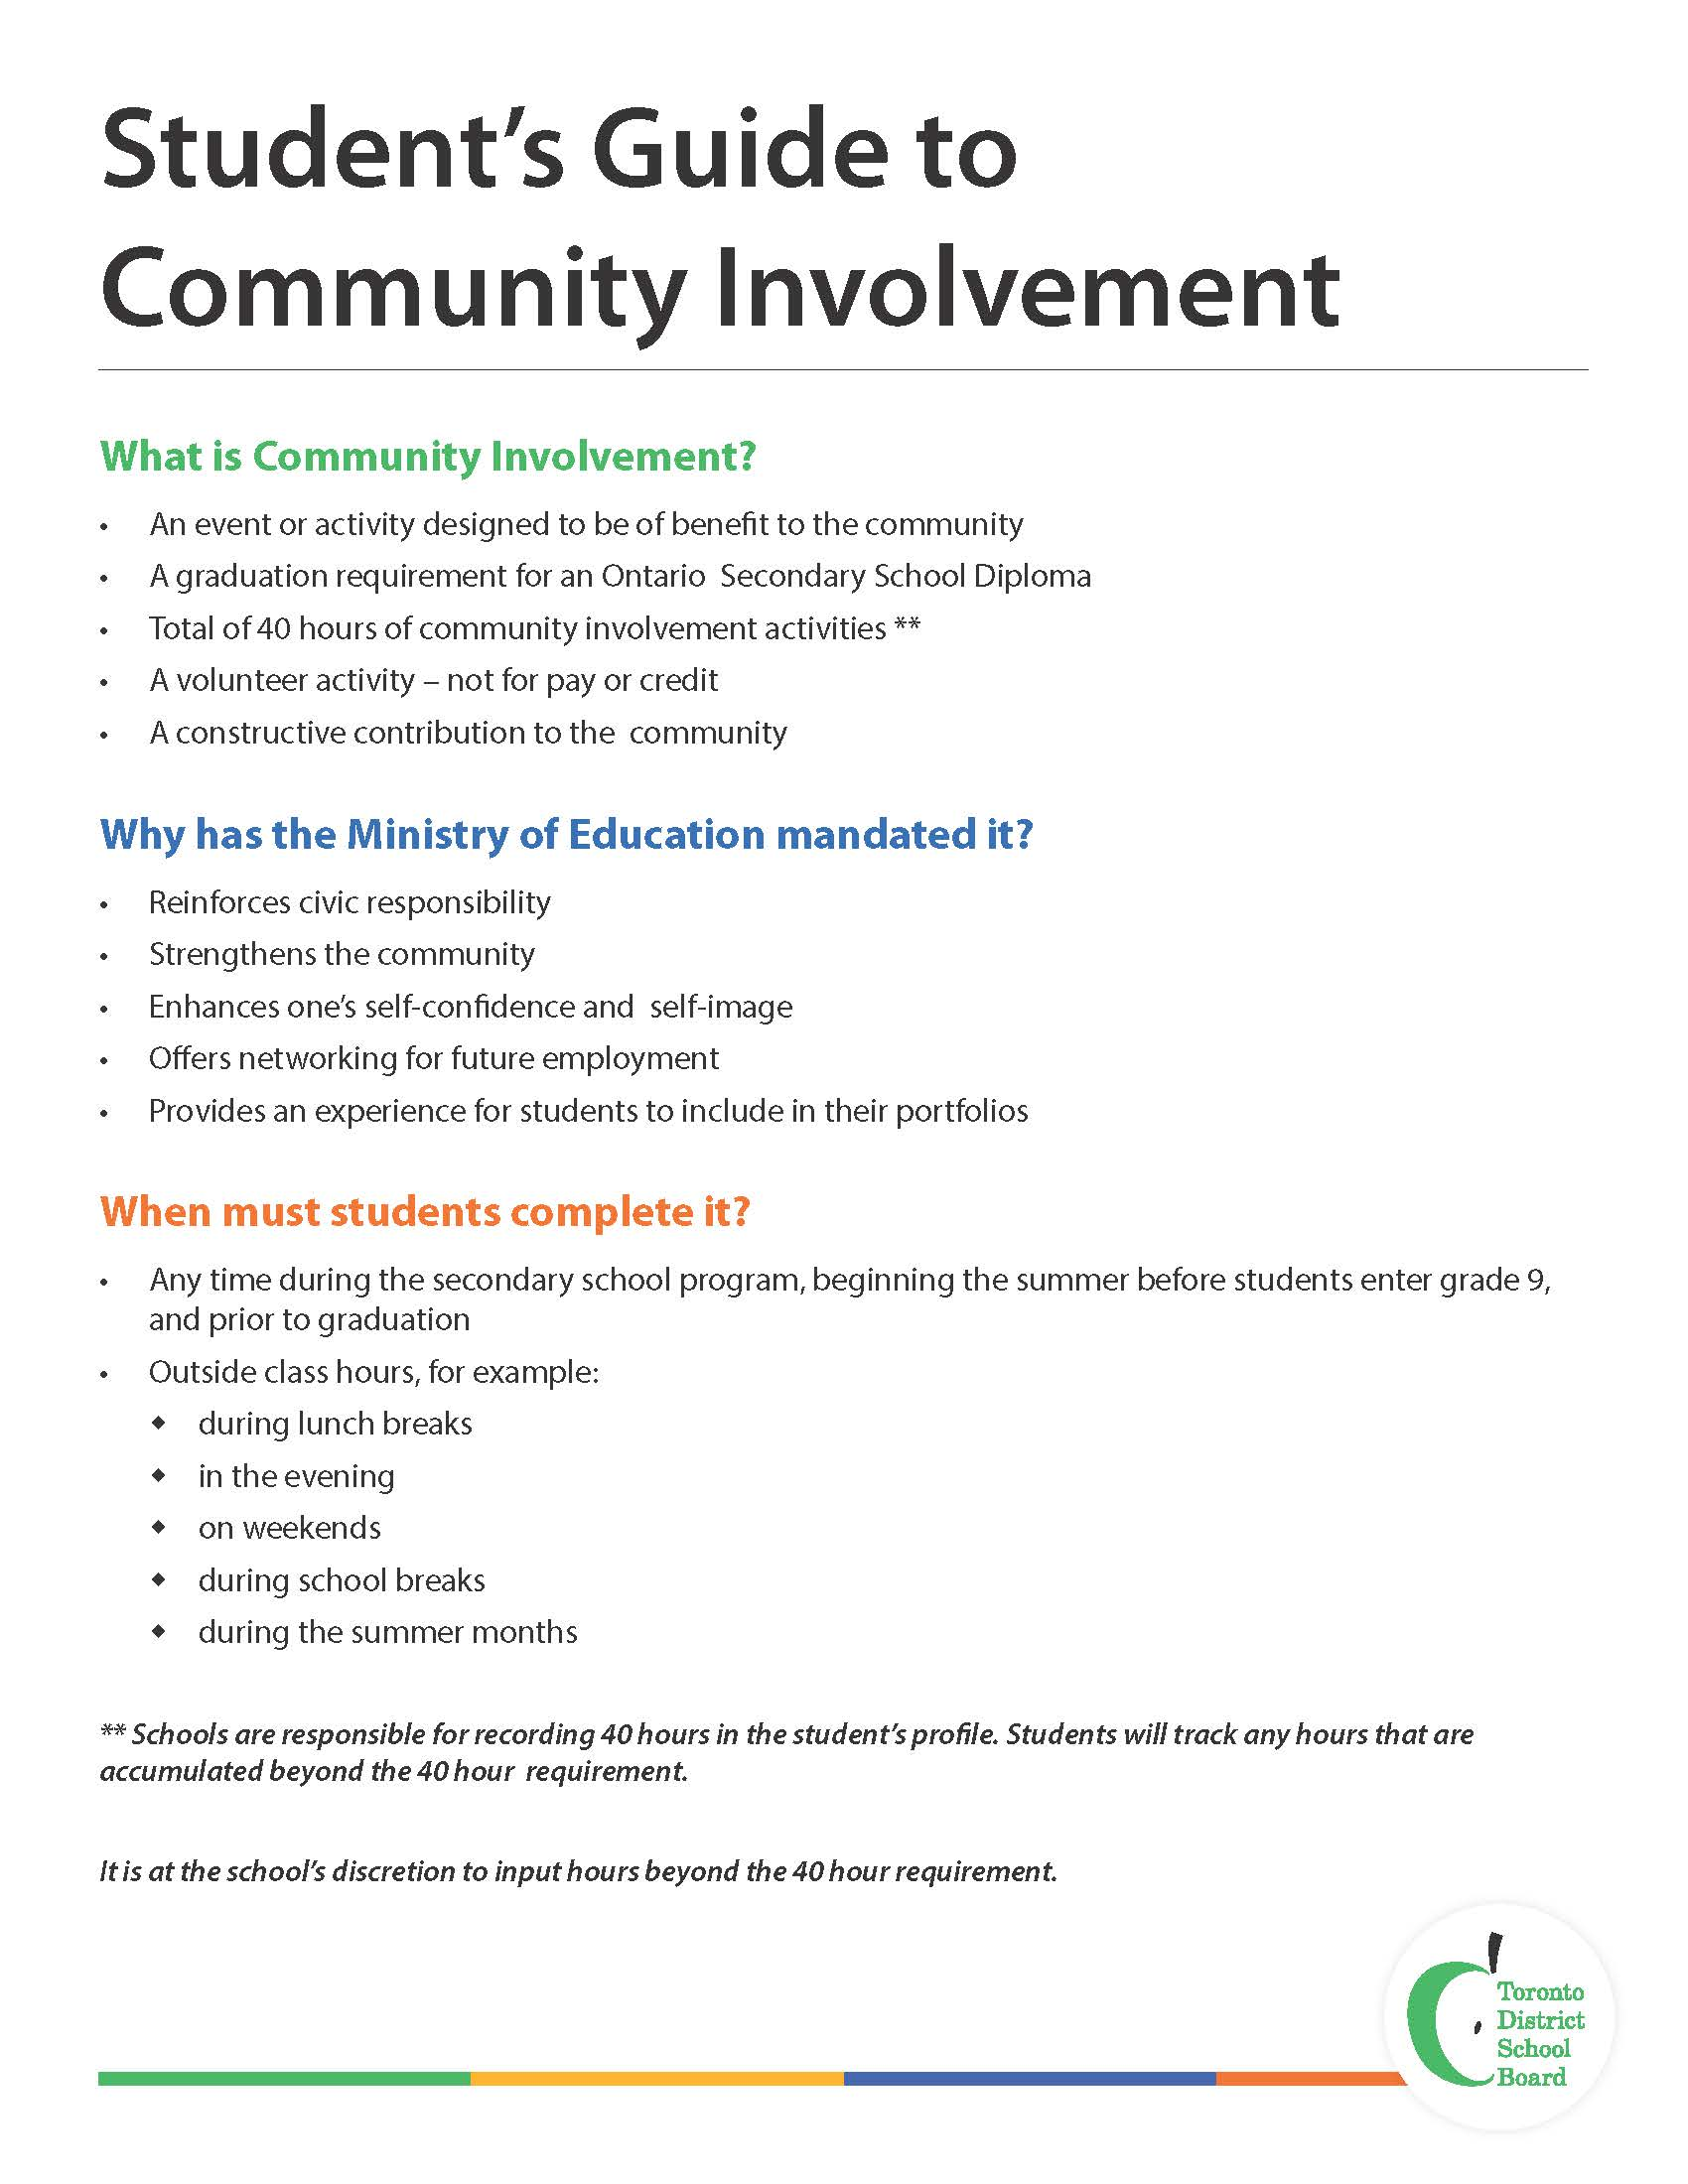 Community Involvement Activity Notification  Completion Form GUIDE (3)_Page_2.jpg